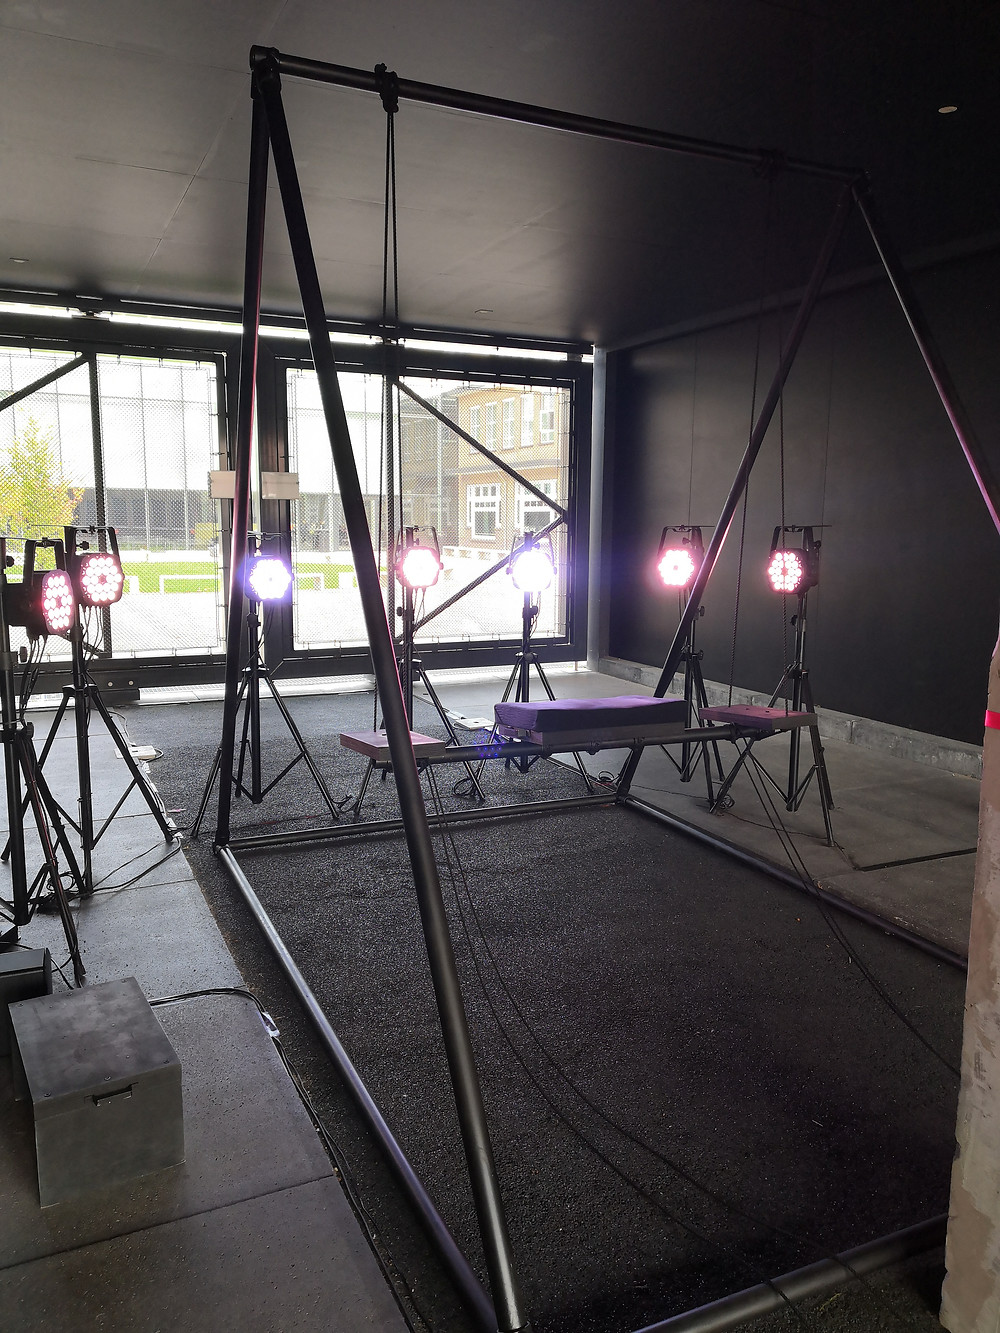 A large swing with a fram of black metal pipes stands in front of a semicircle of seven light fixtures, all aimed towards the seat of the swing